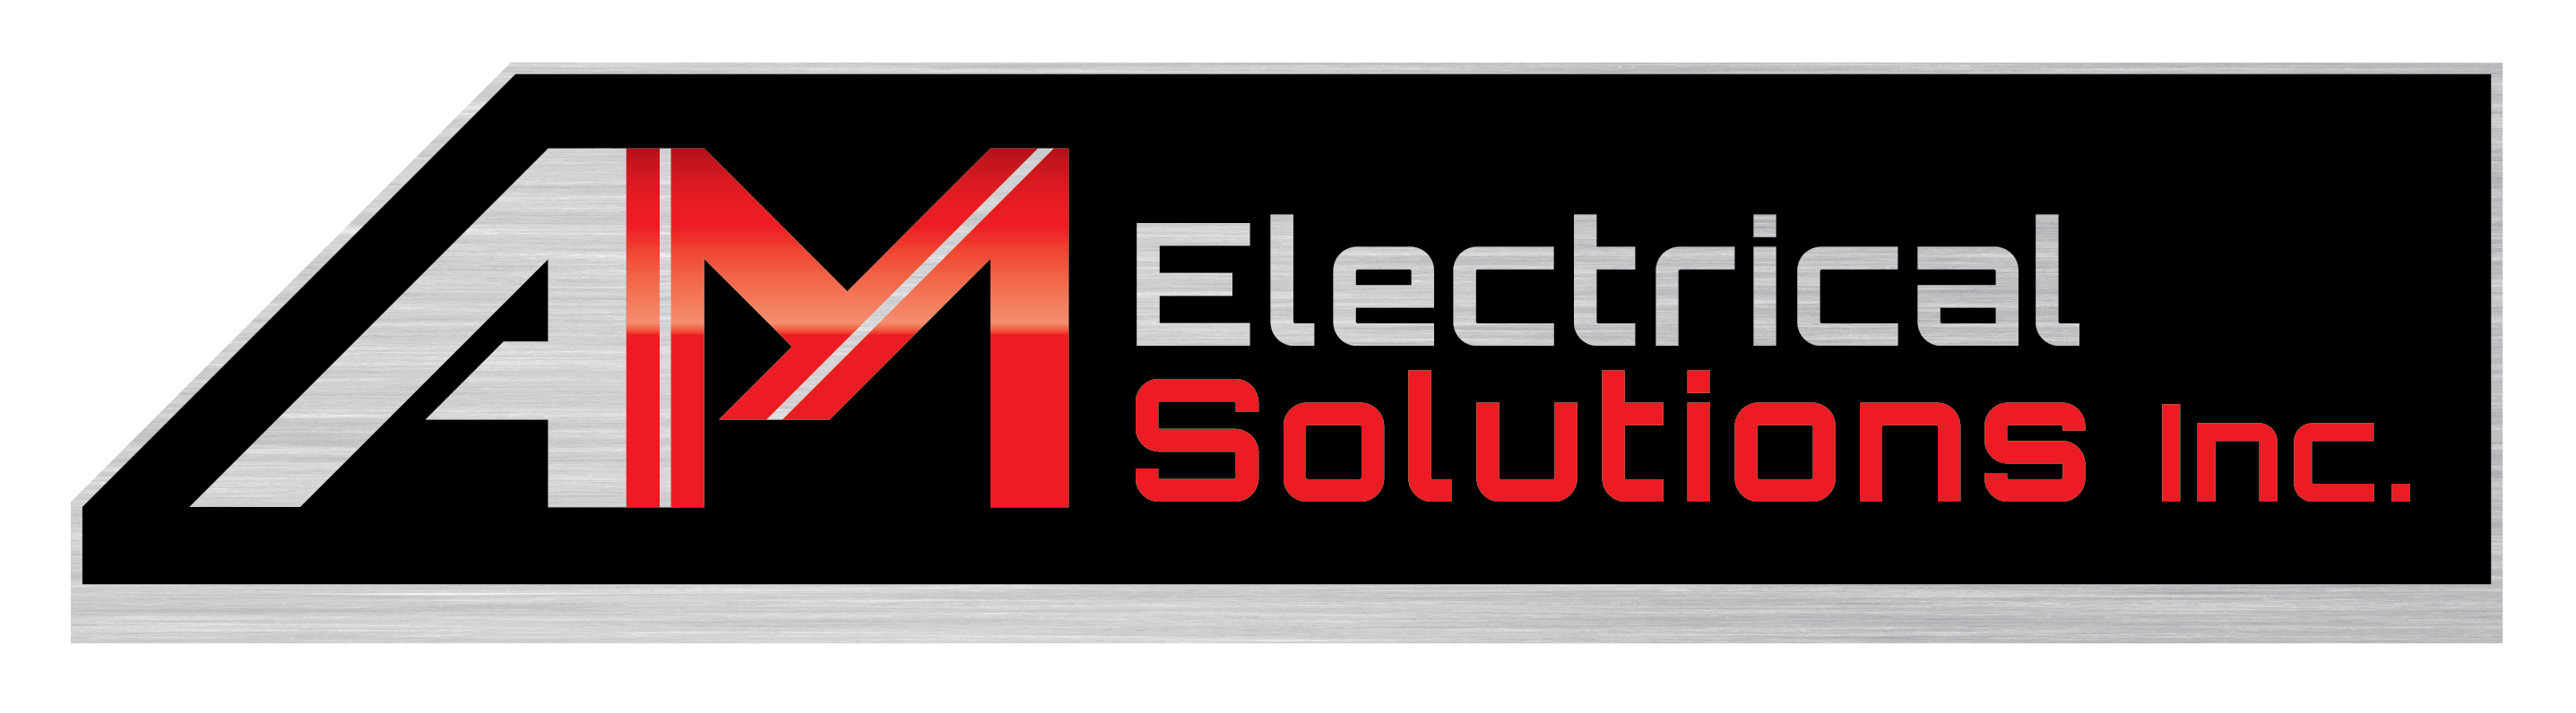 Generators,Automatic Transfer Switches | Product categories | A. M. Electrical Solutions Inc. – Generators in Barbados and the Caribbean